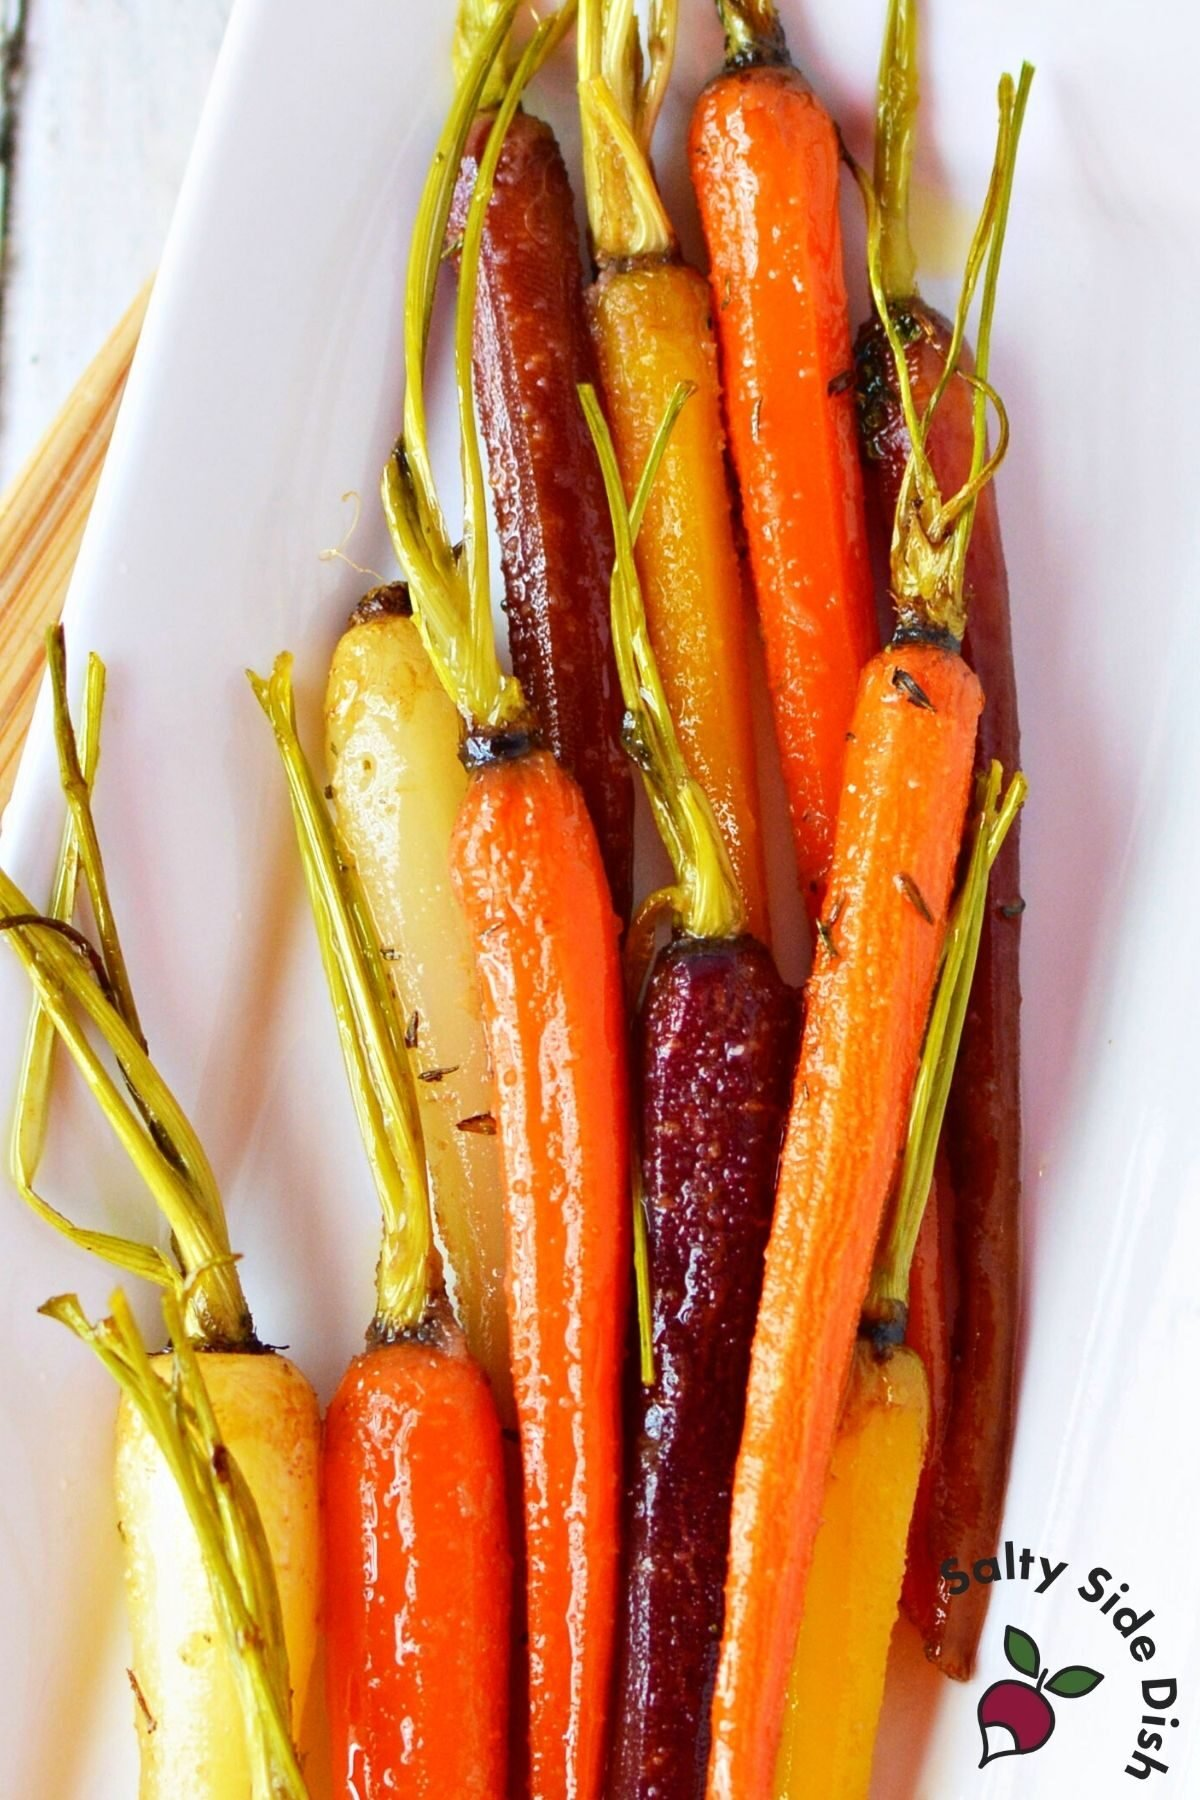 cooked carrots piled high on a white plate.